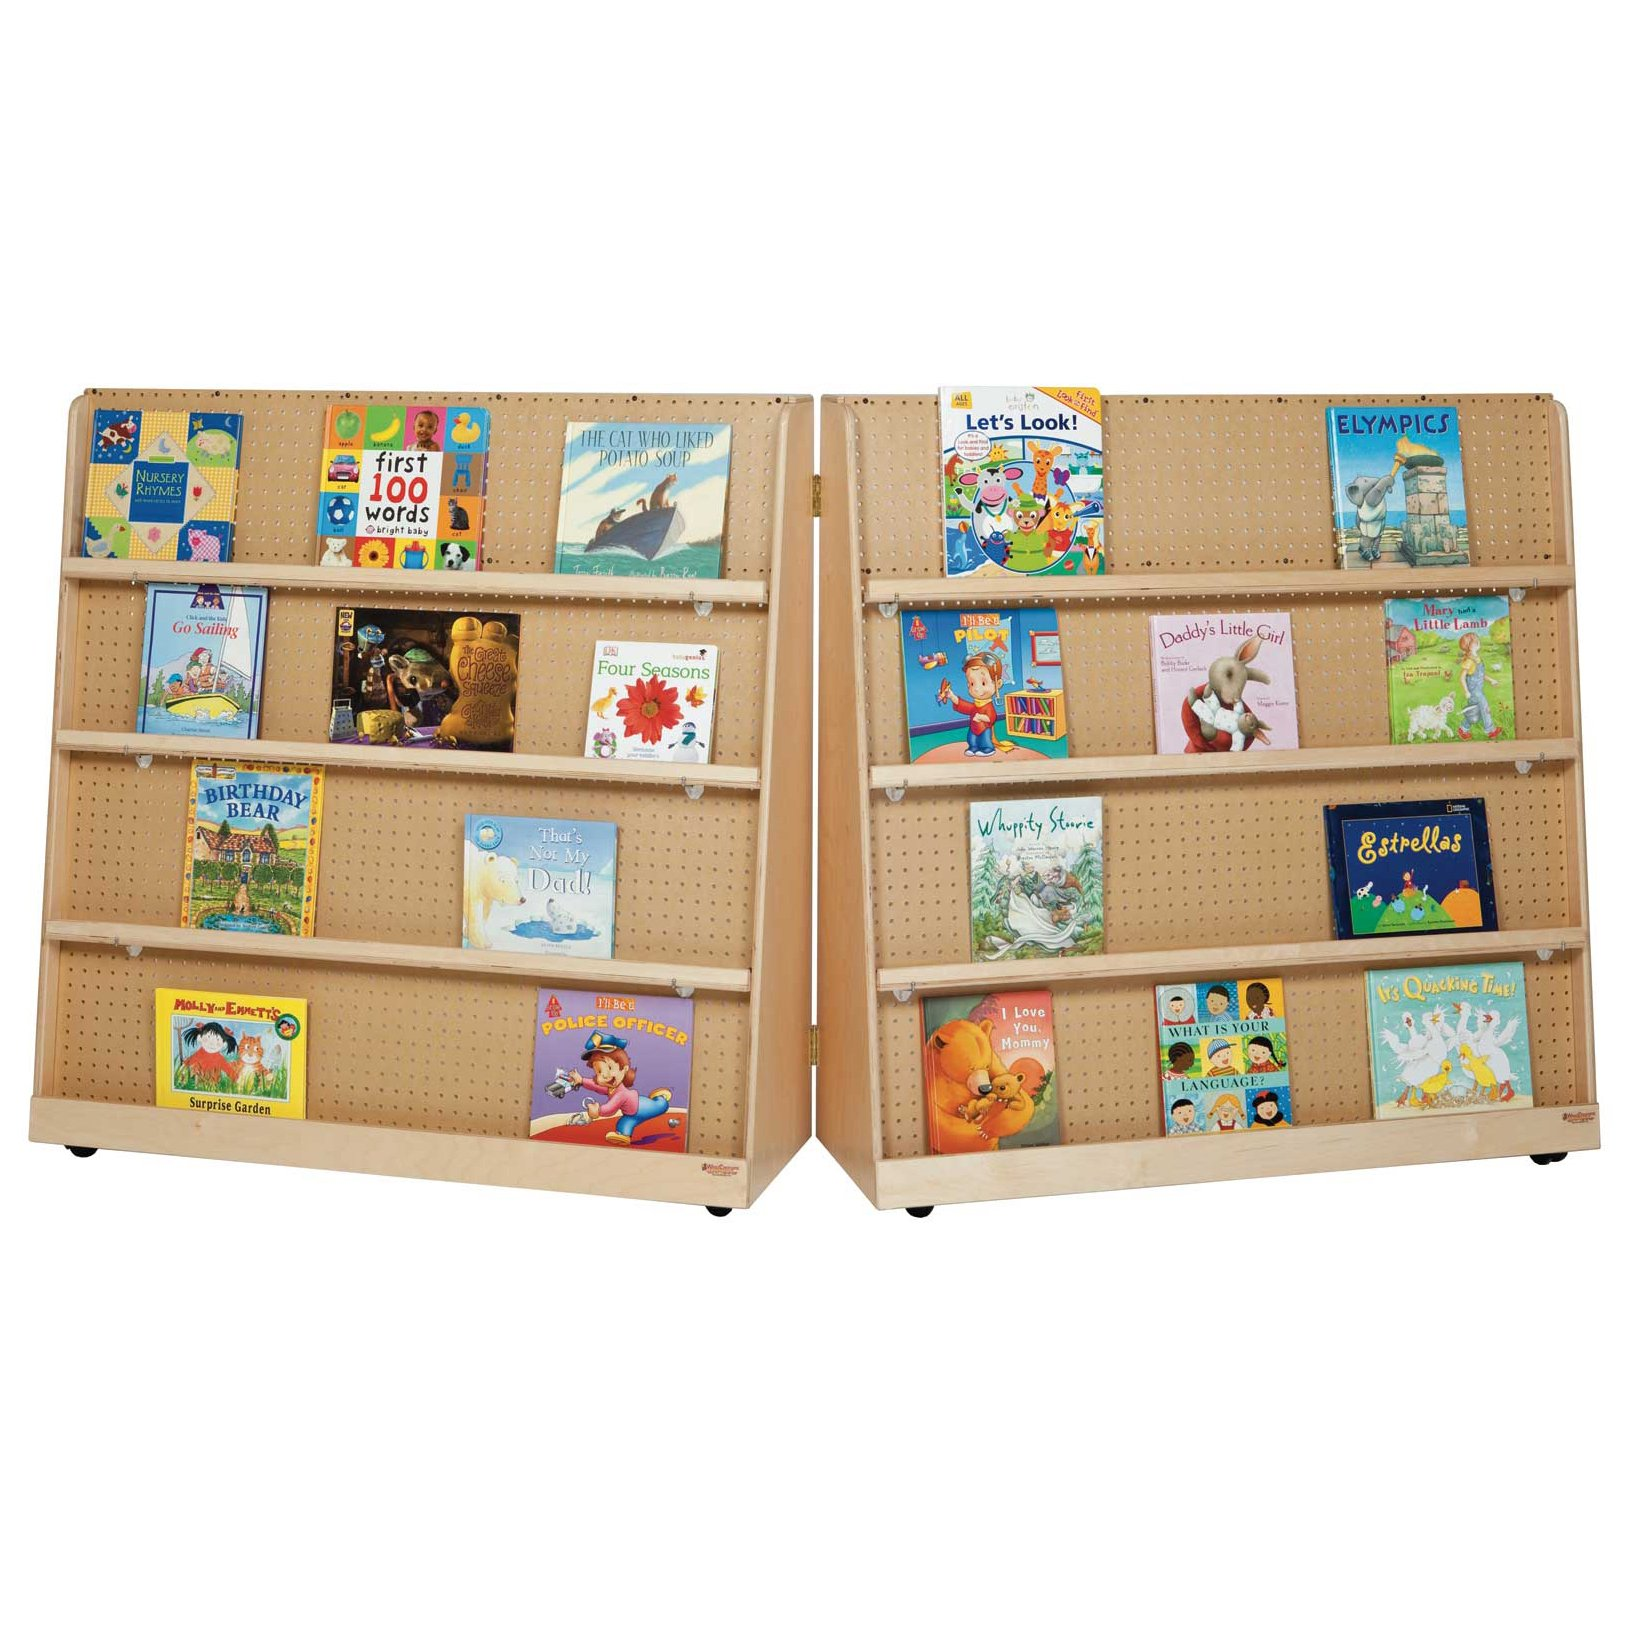 Wood Designs 14343 Double Sided Folding Book Display, 48'' Height (Pack of 2)